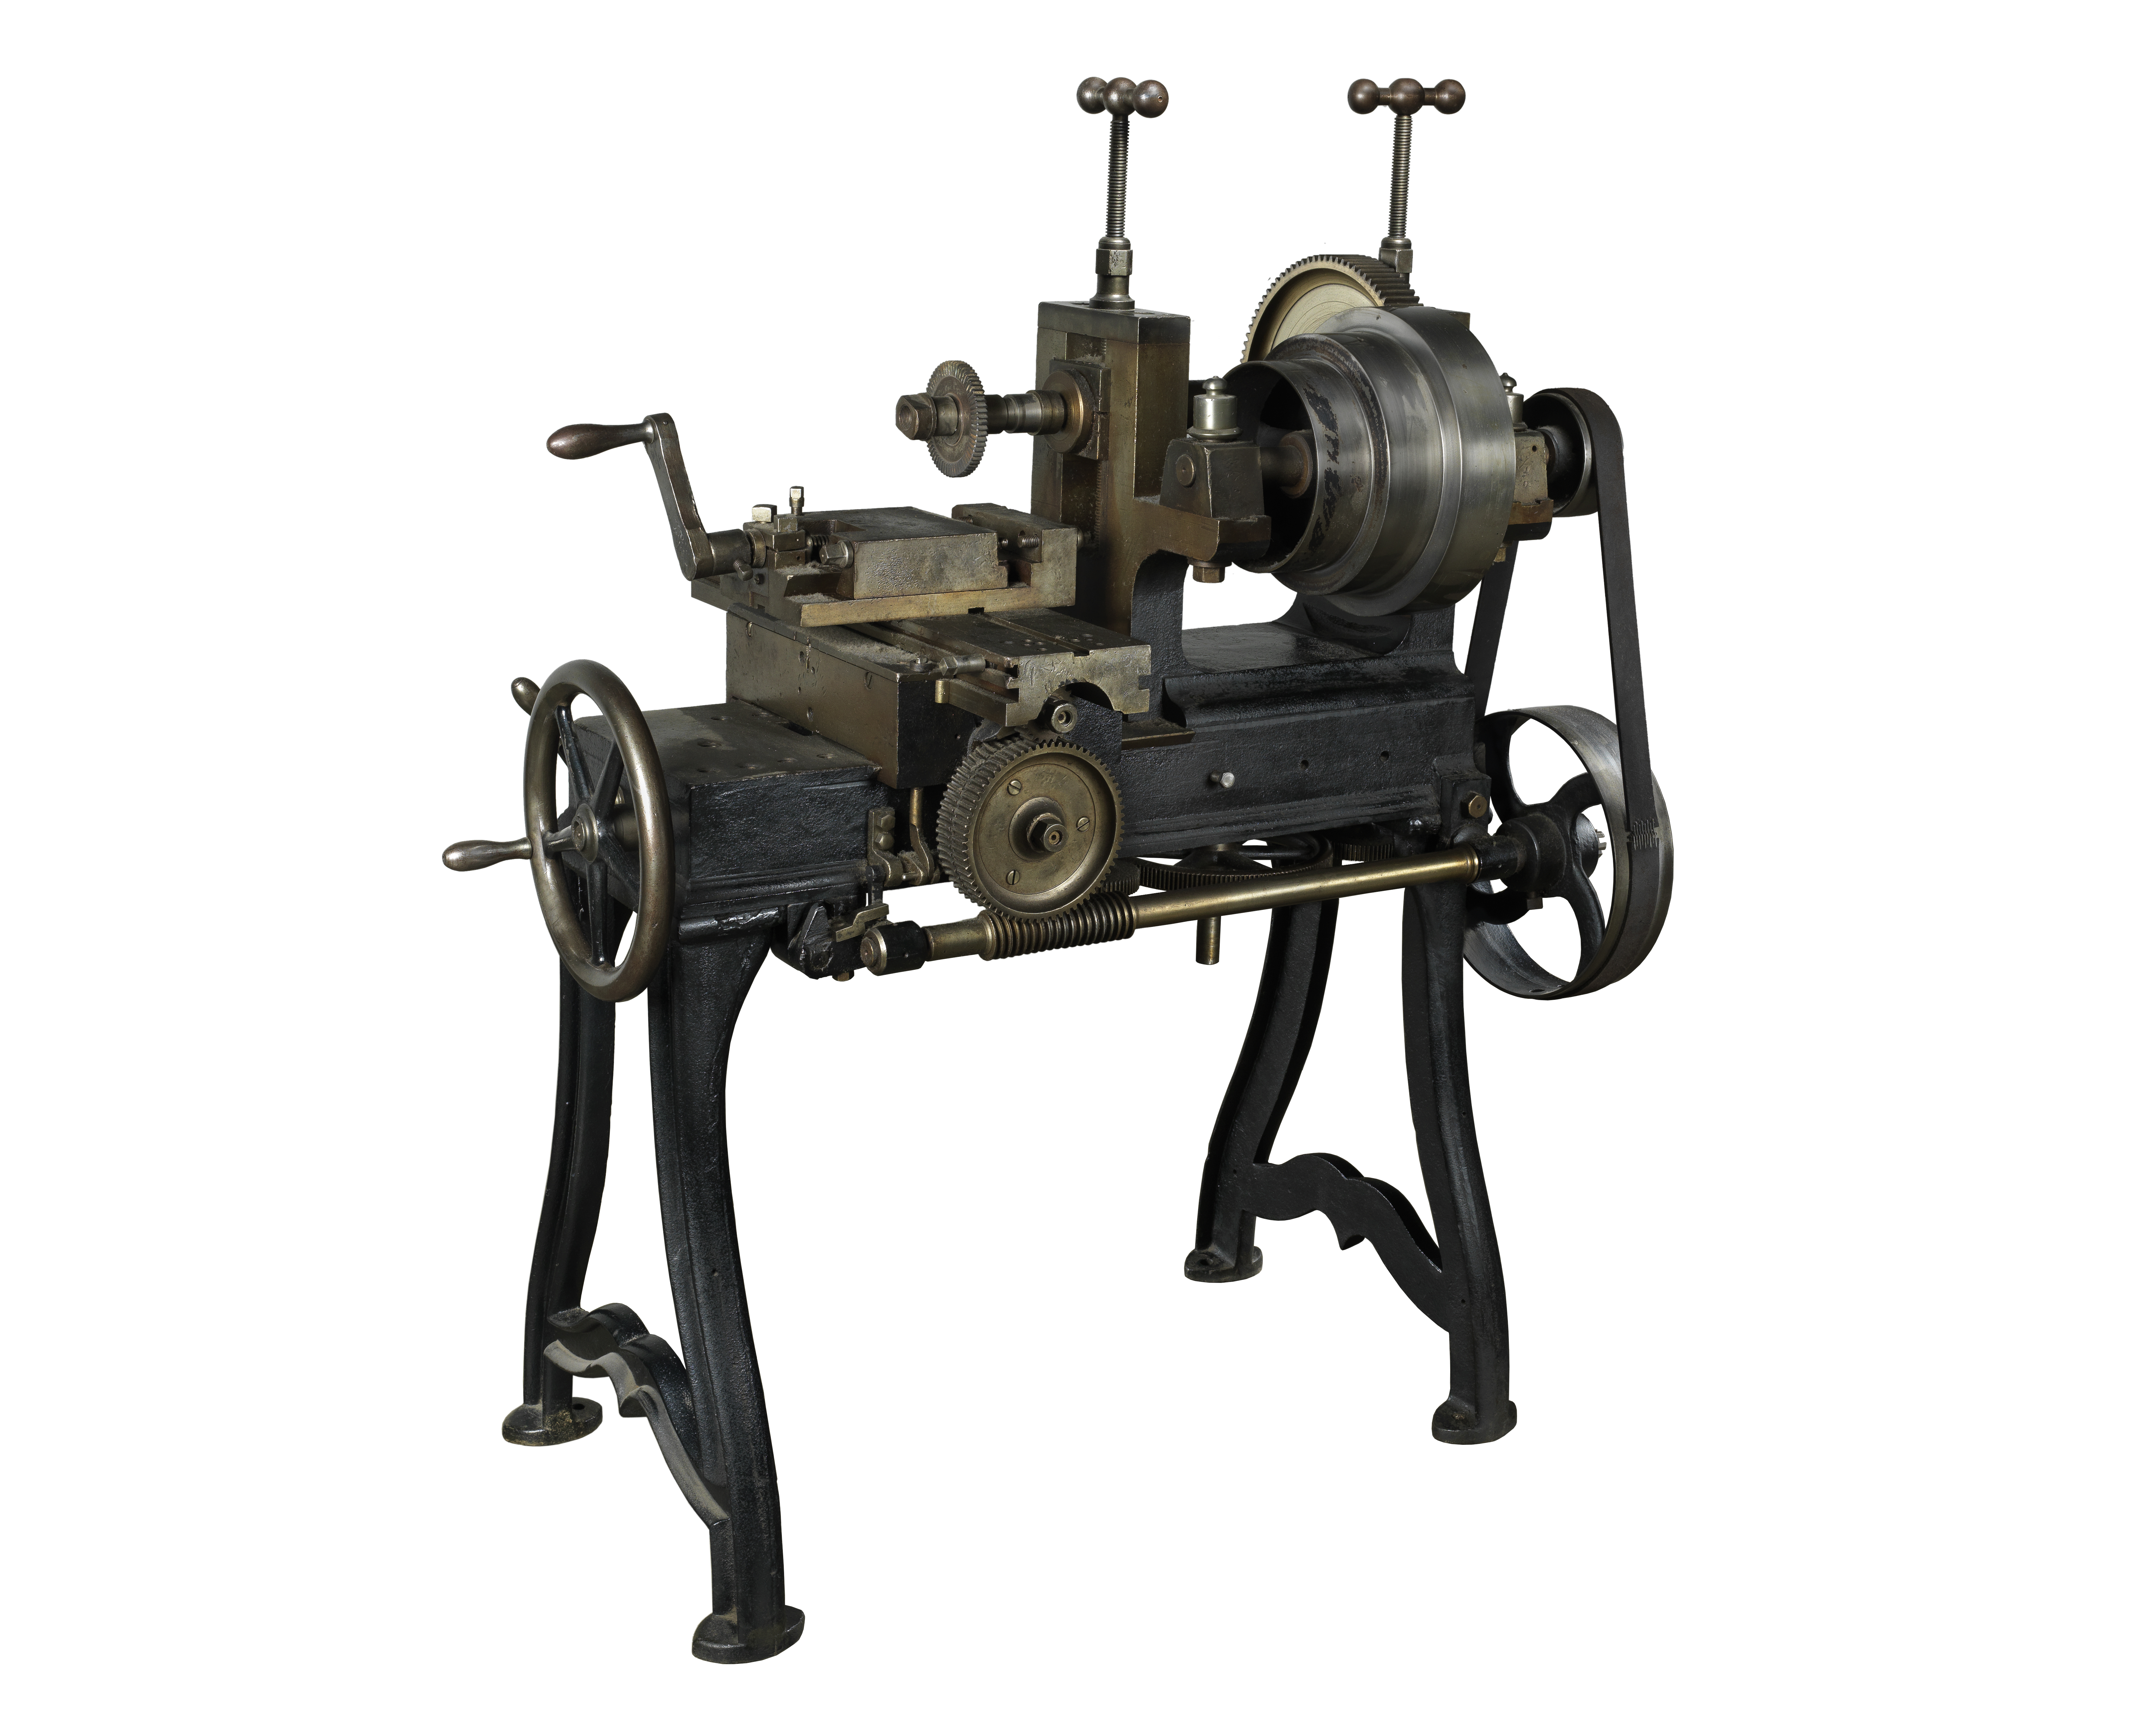 Lincoln Milling Machine, 1861